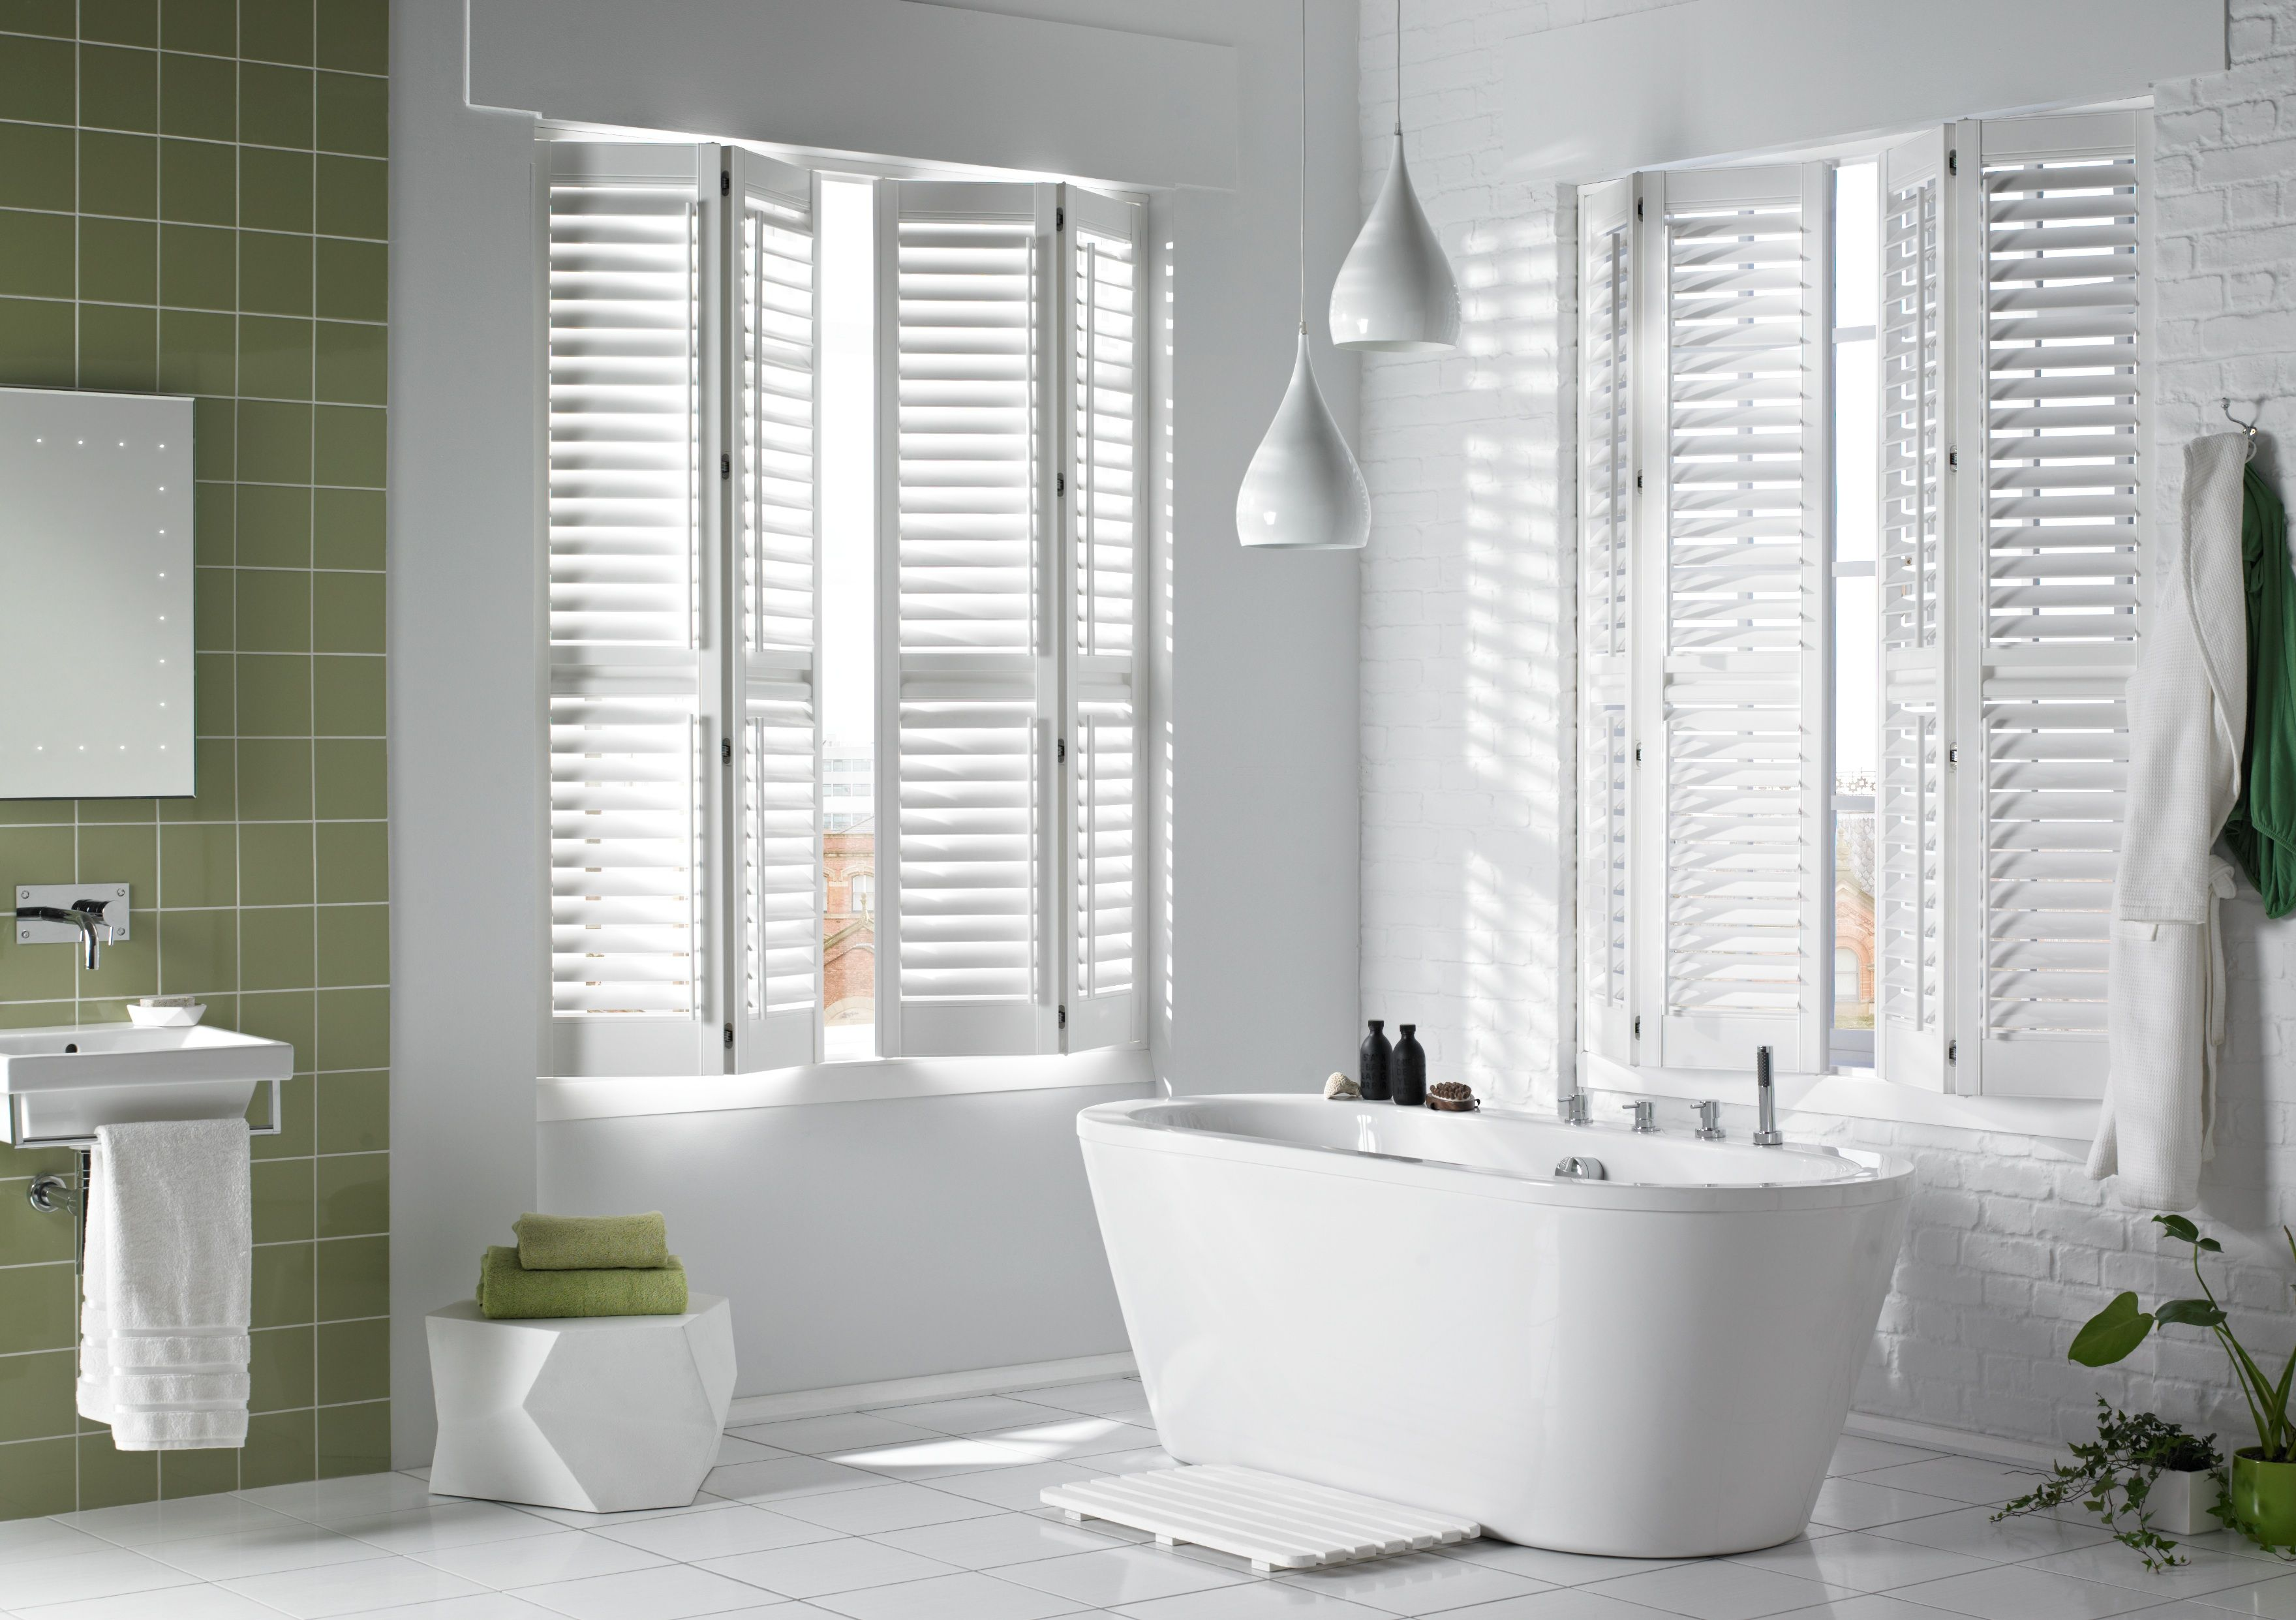 Bathroom with white vinyl shutters